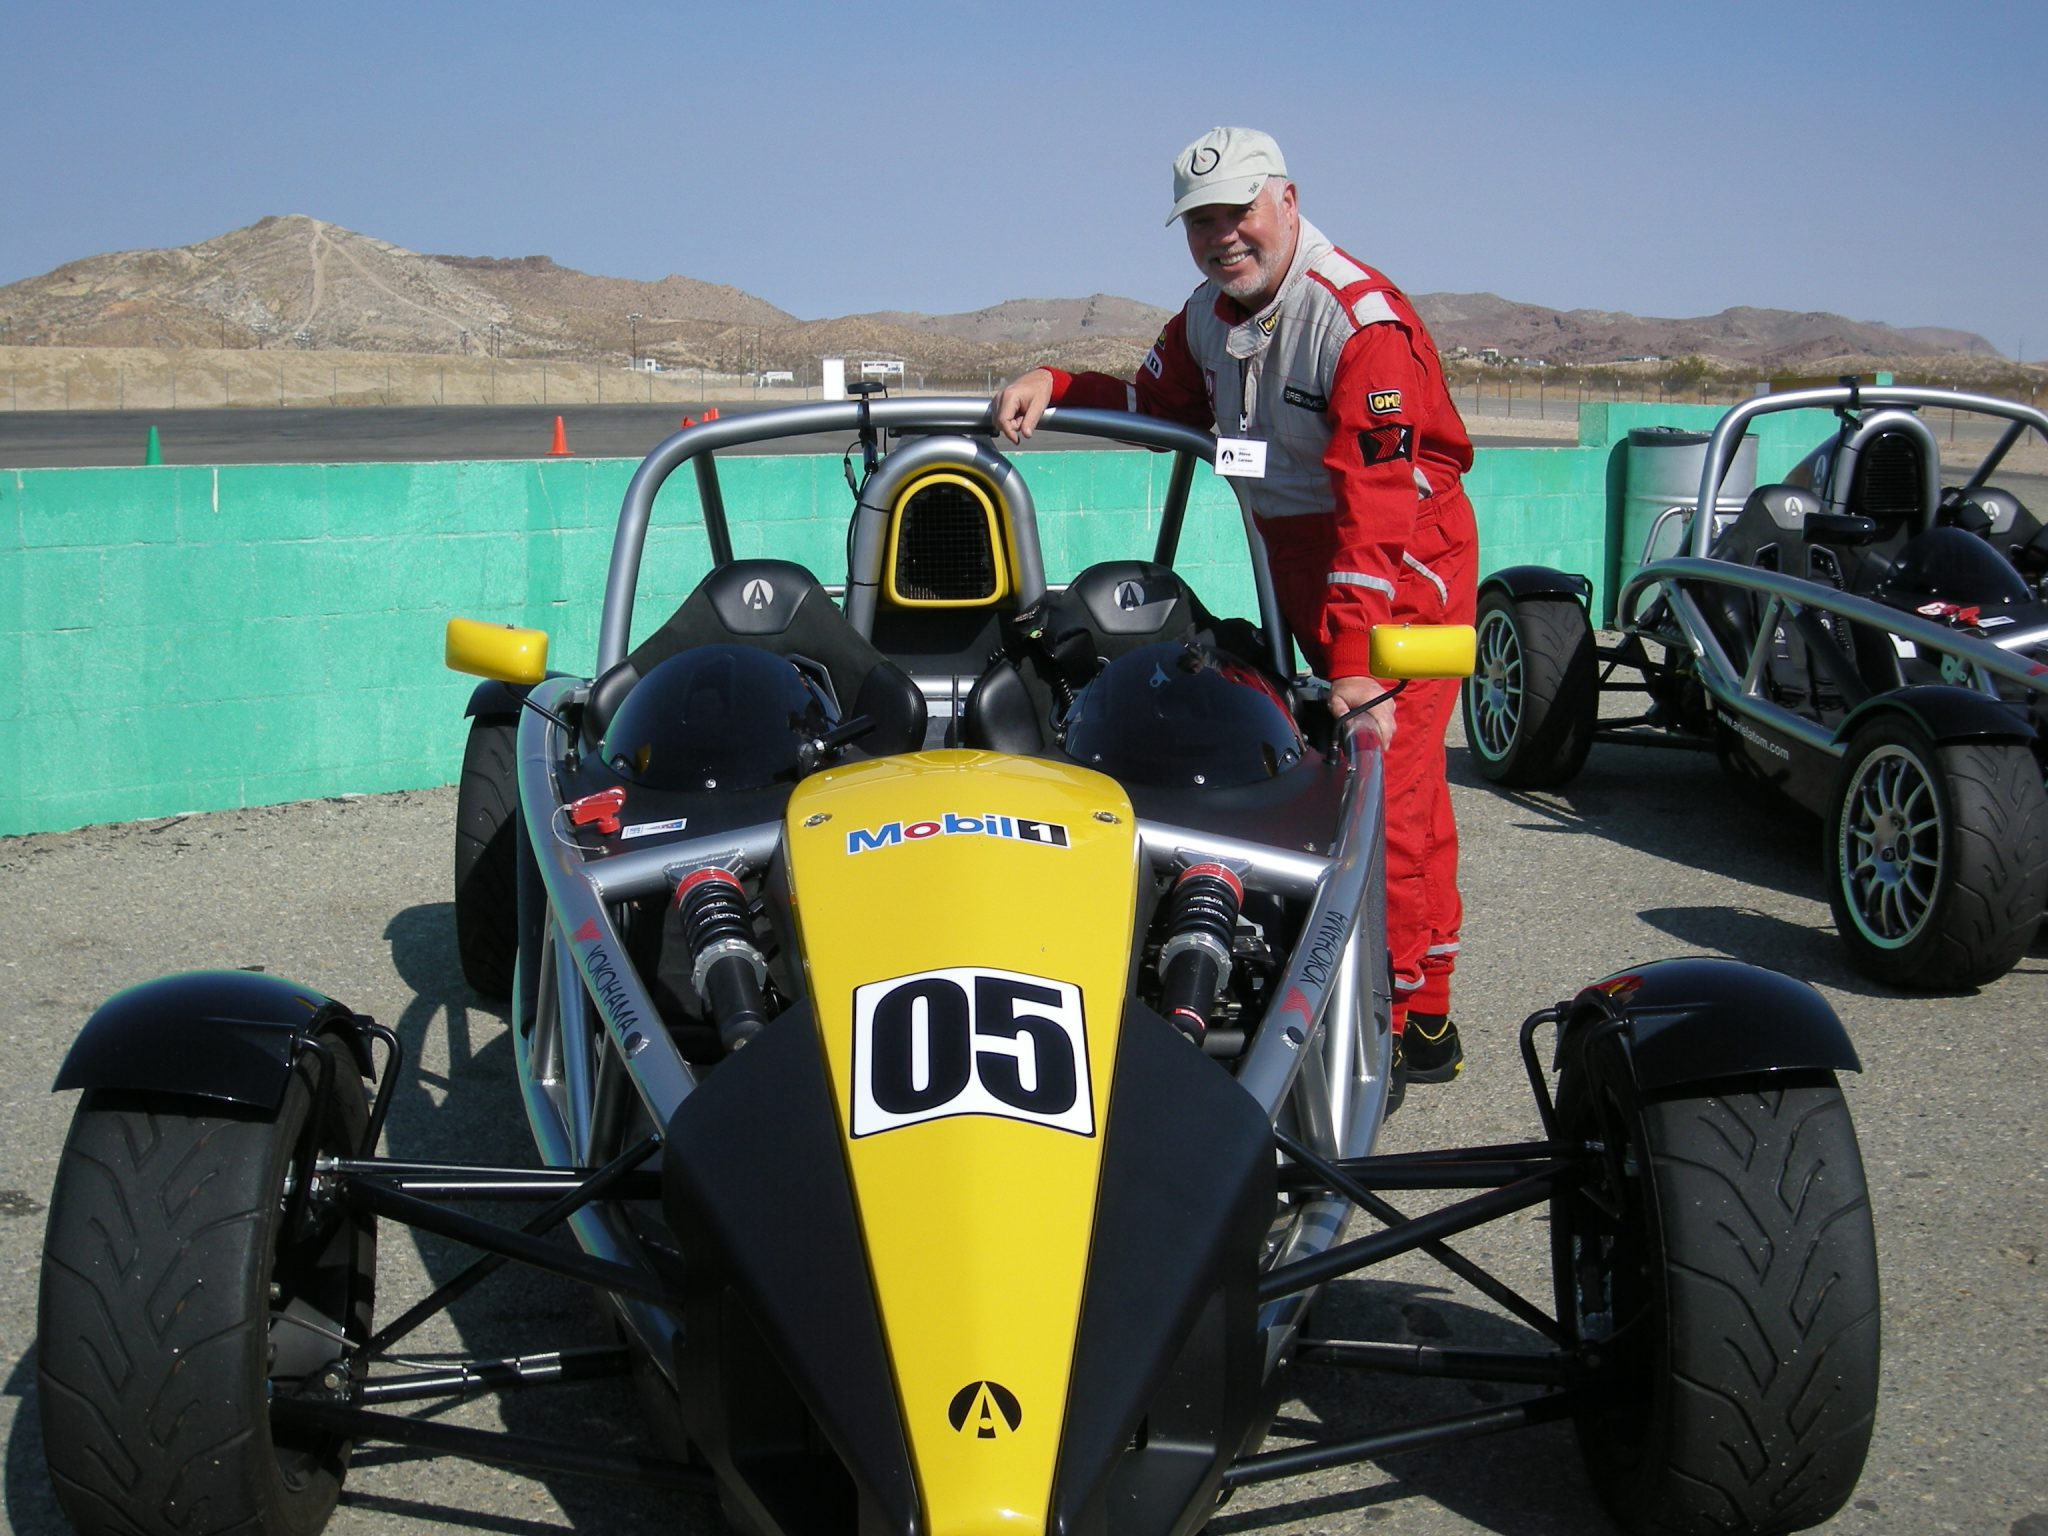 man standing by race car